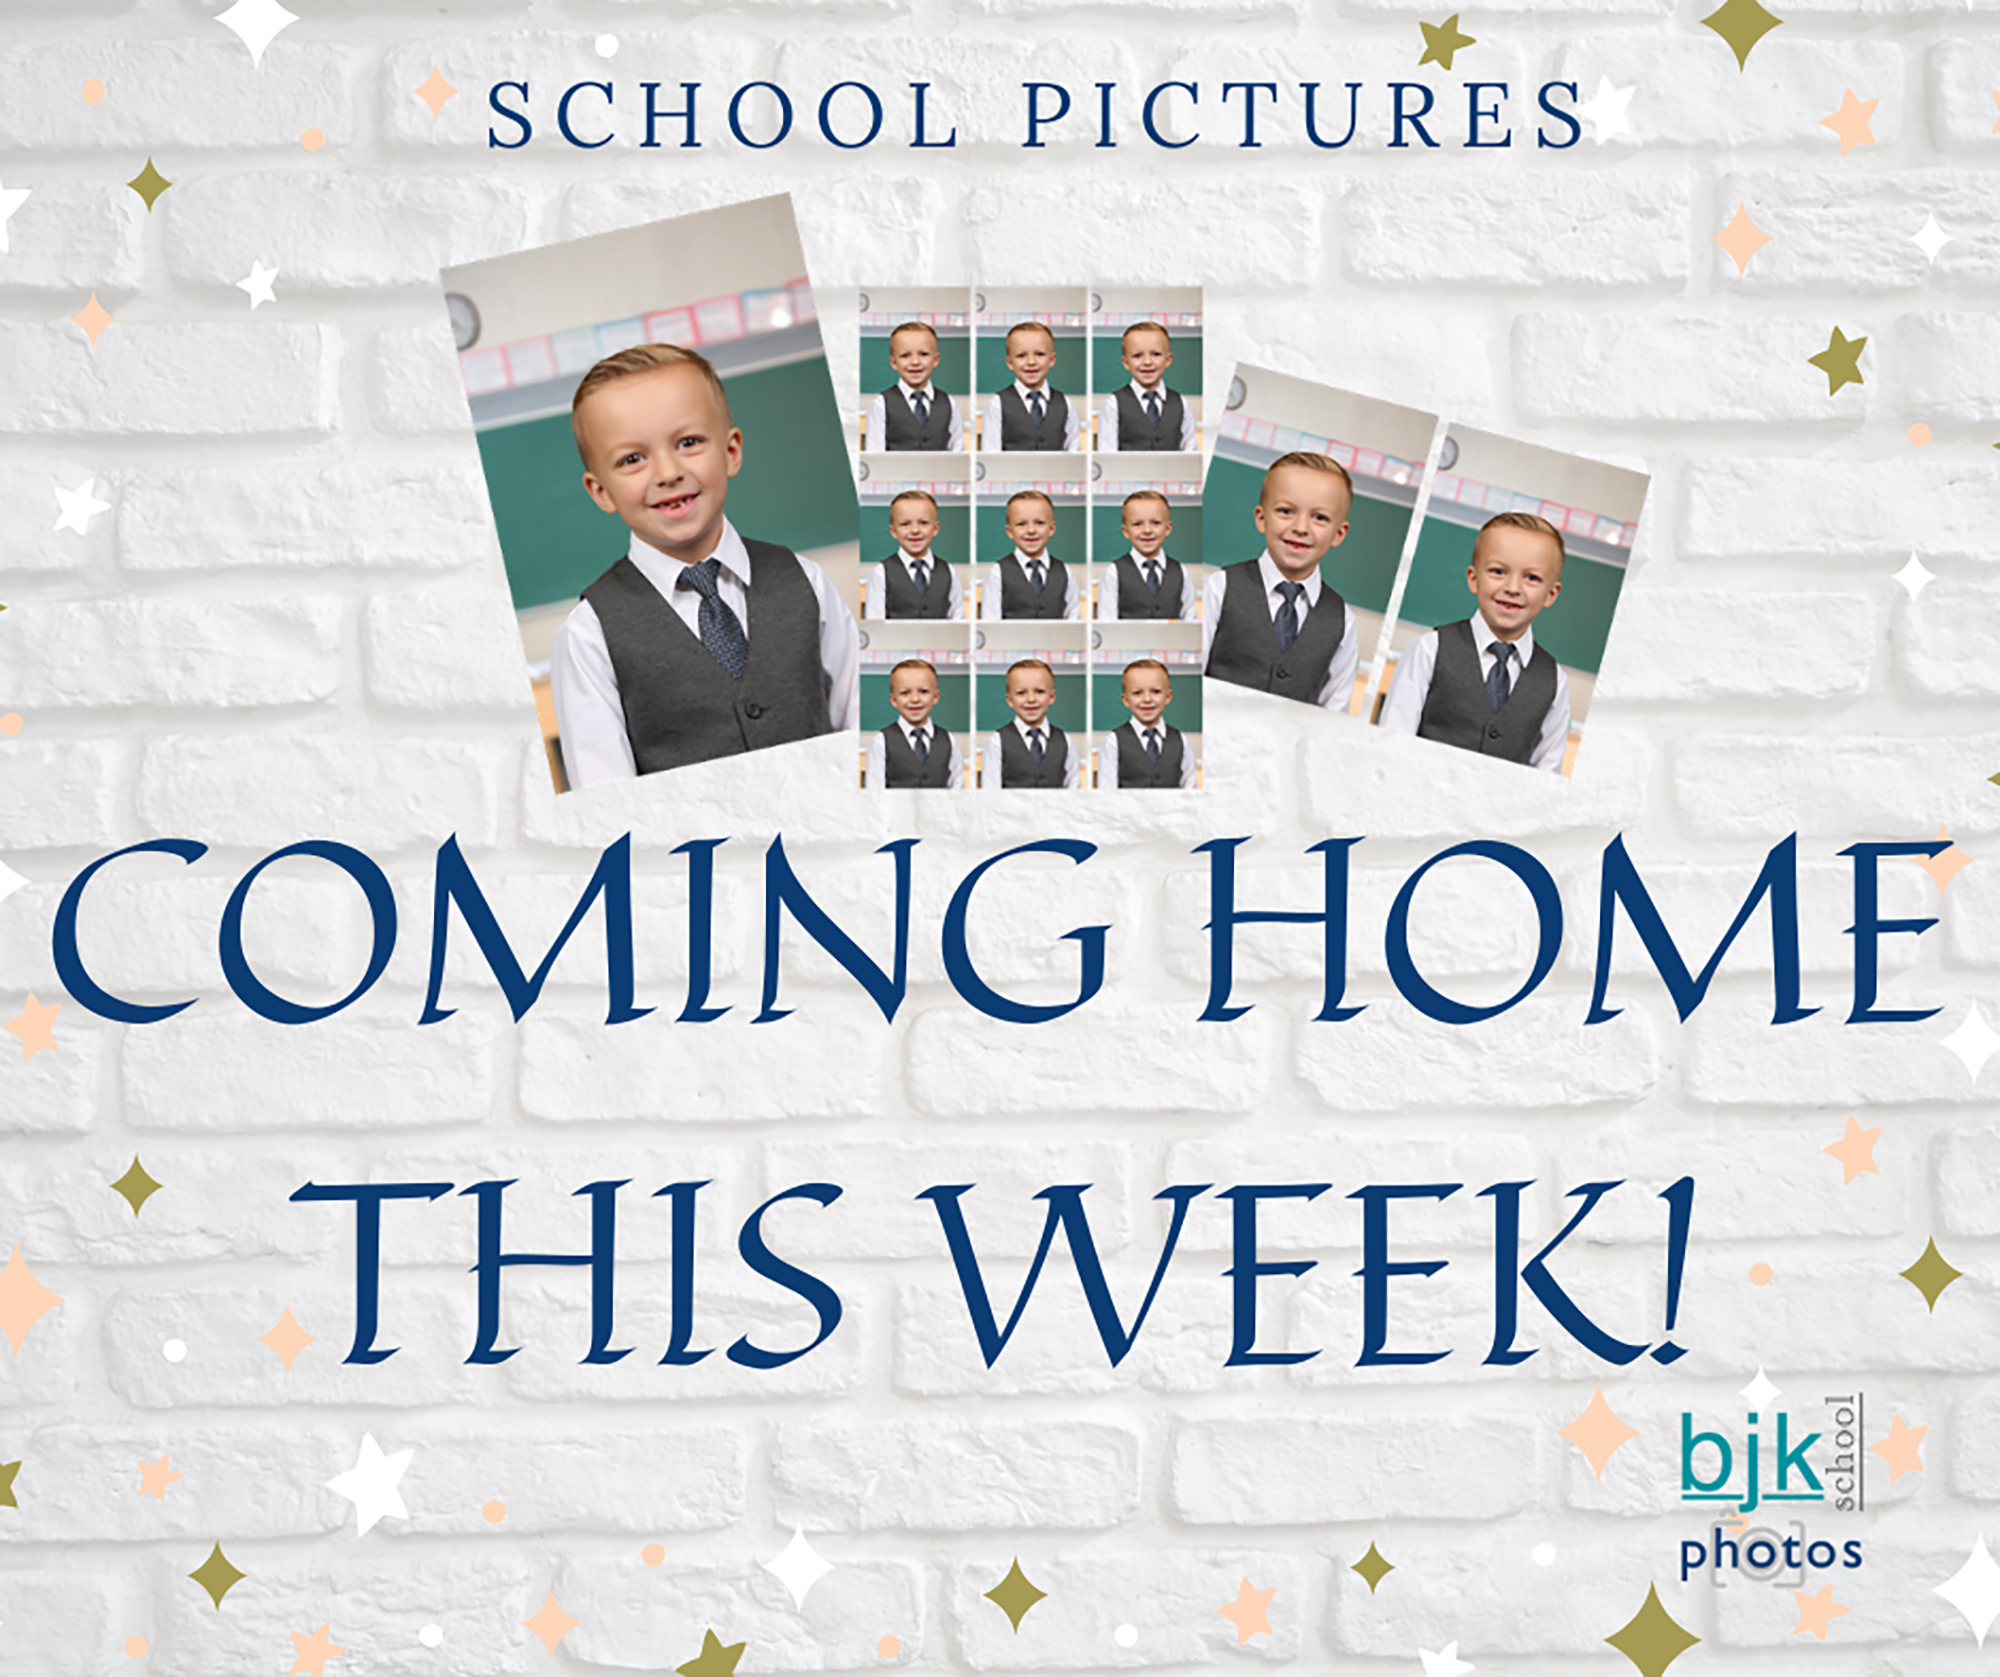 School Pictures Coming Home This Week! illustration (10/2020)